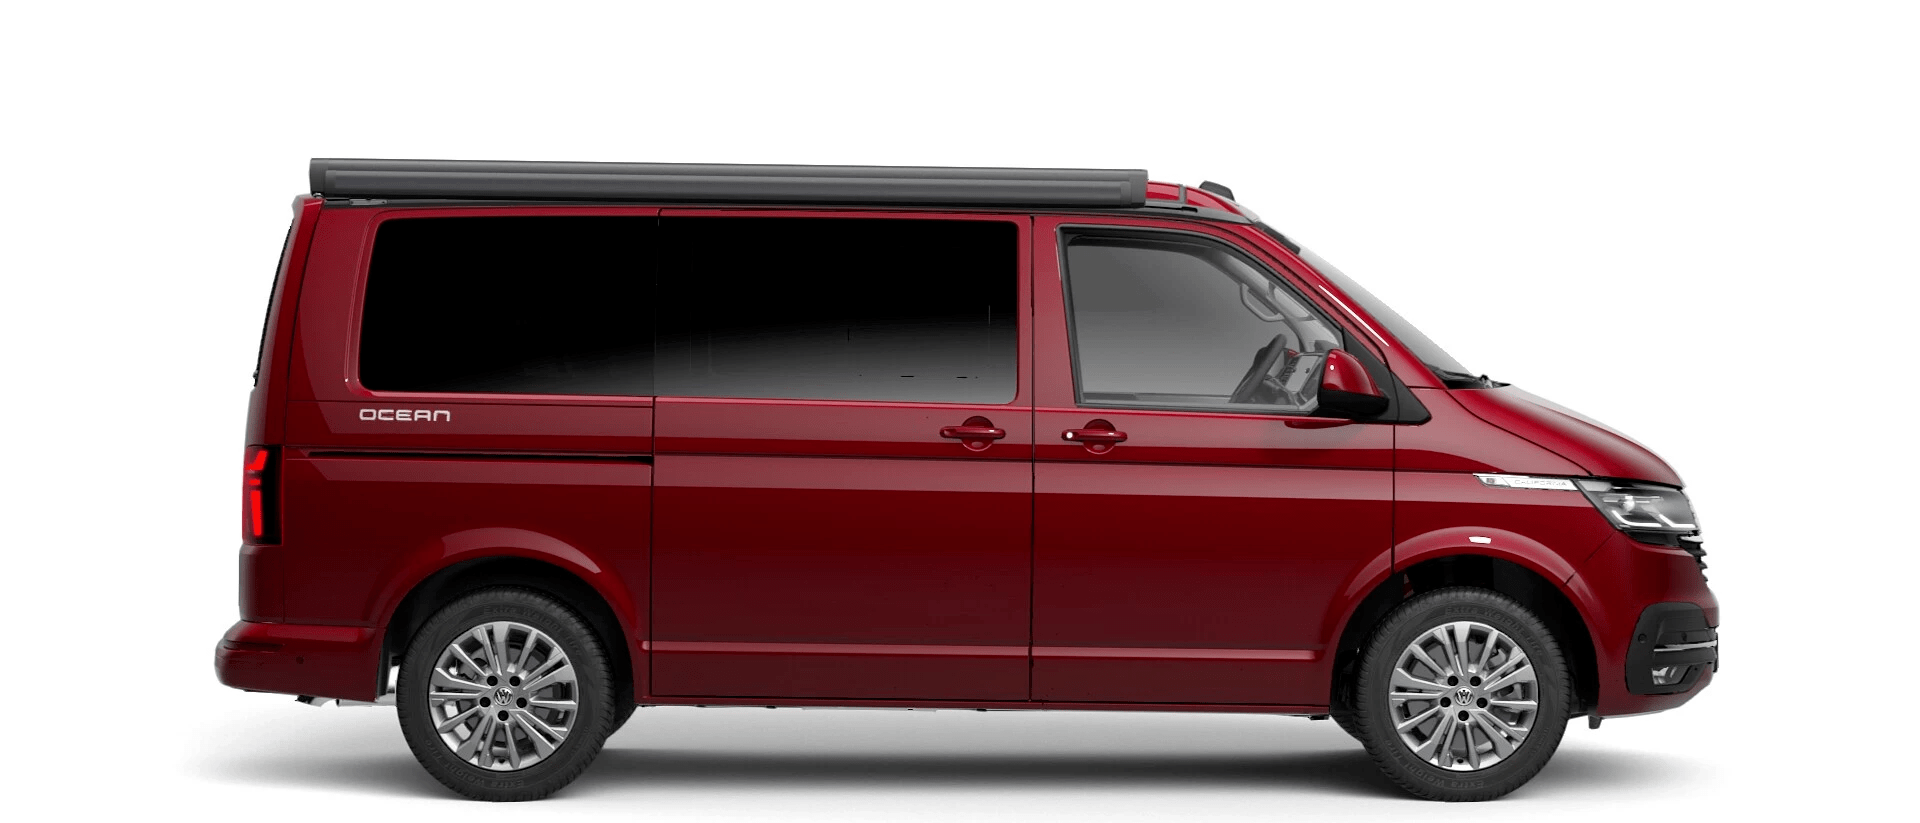 Volkswagen Van Range California - Available In Metallic Fortana Red